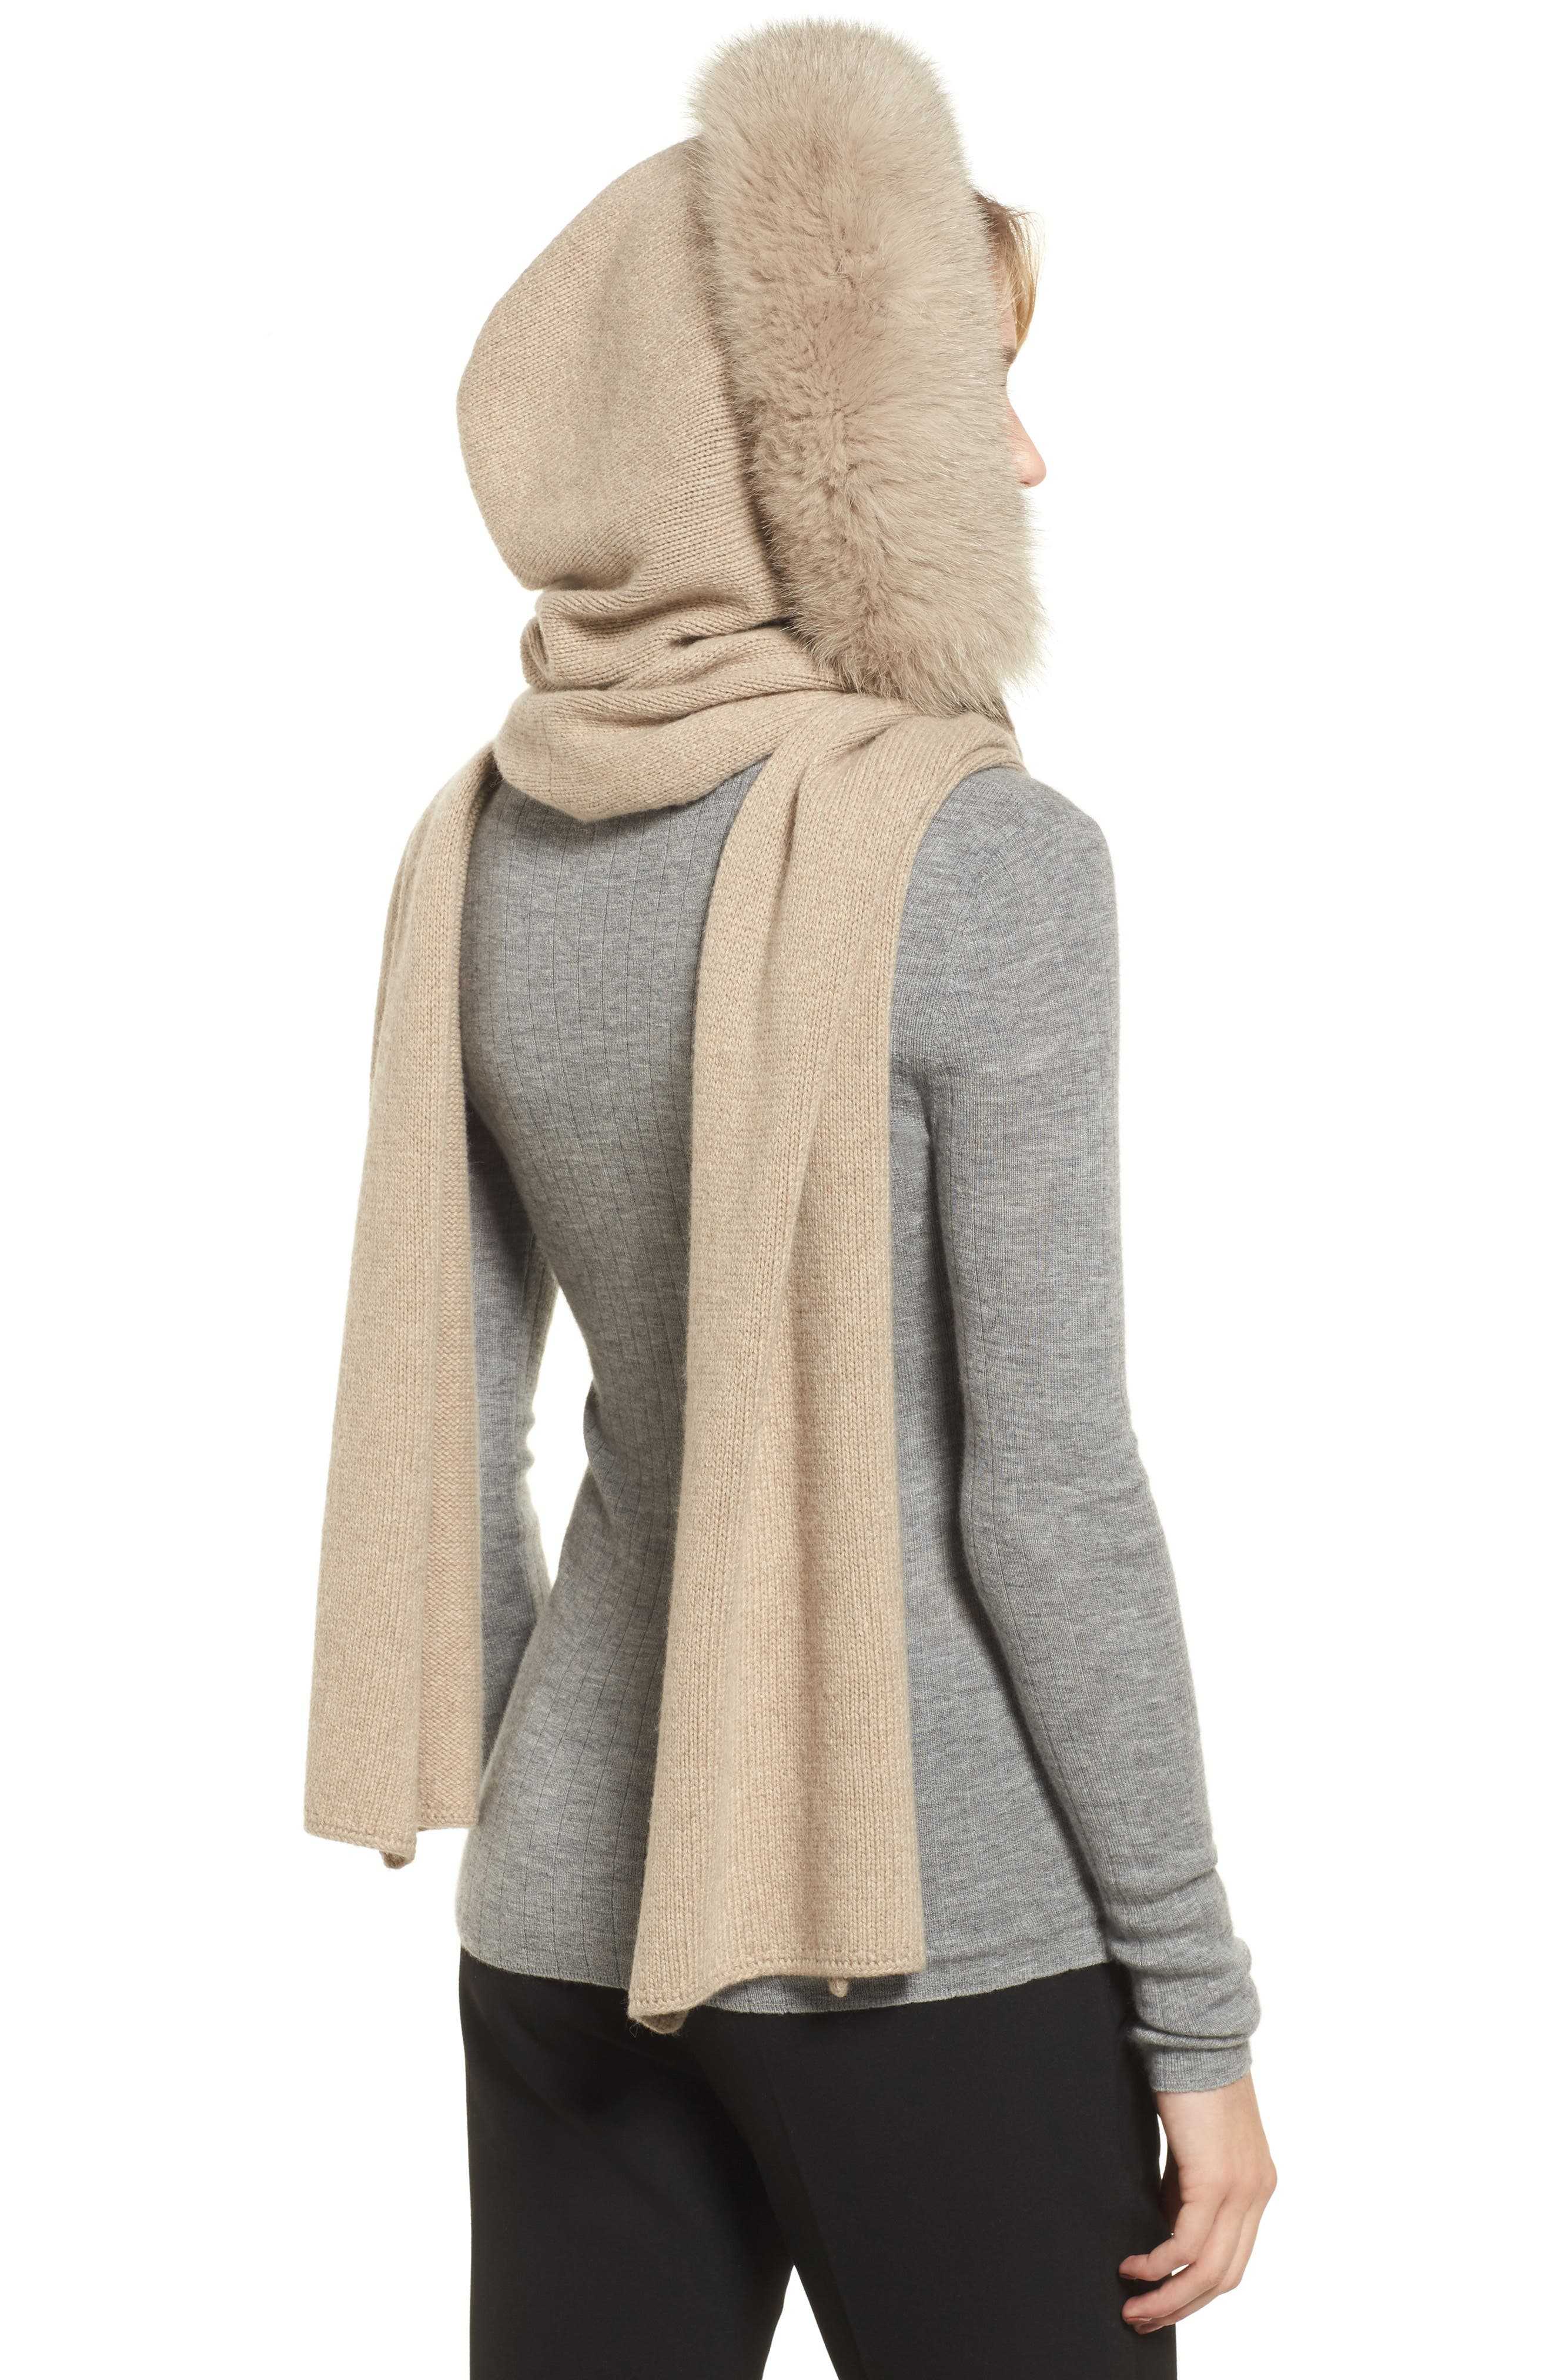 Nava Hooded Scarf with Genuine Fox Fur Trim,                             Alternate thumbnail 2, color,                             001 ALBINO